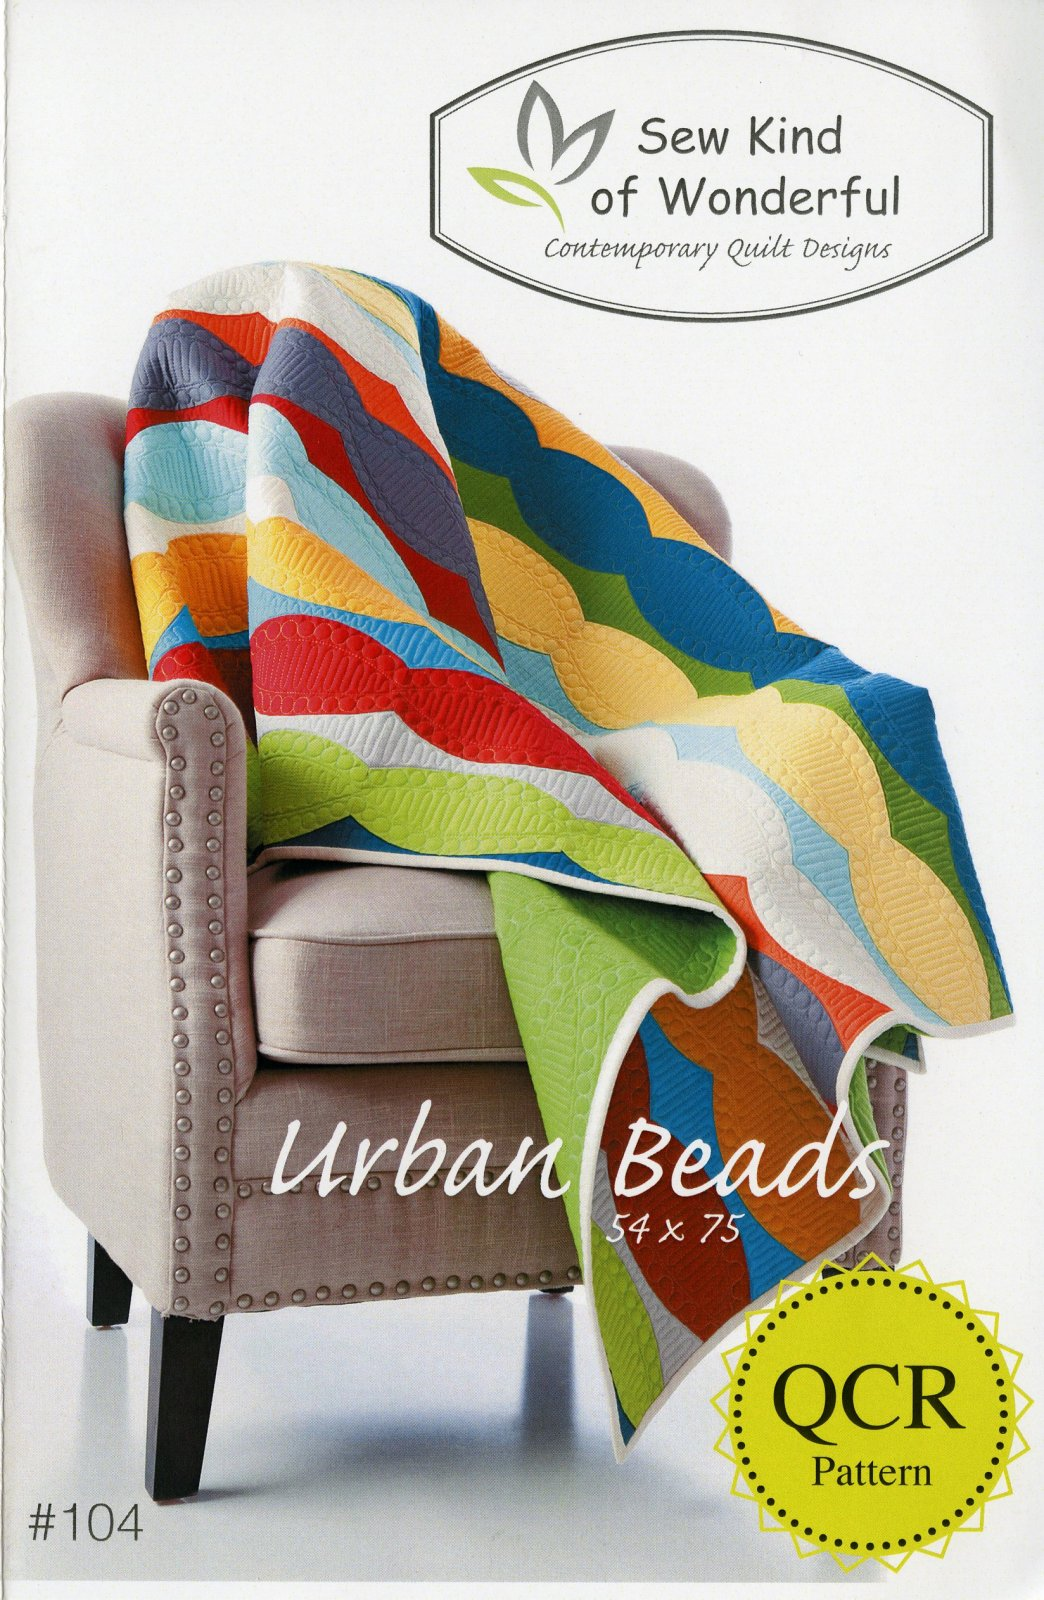 Sew Kind of Wonderful - Jenny Pedigo - Urban Beads Quilt Pattern